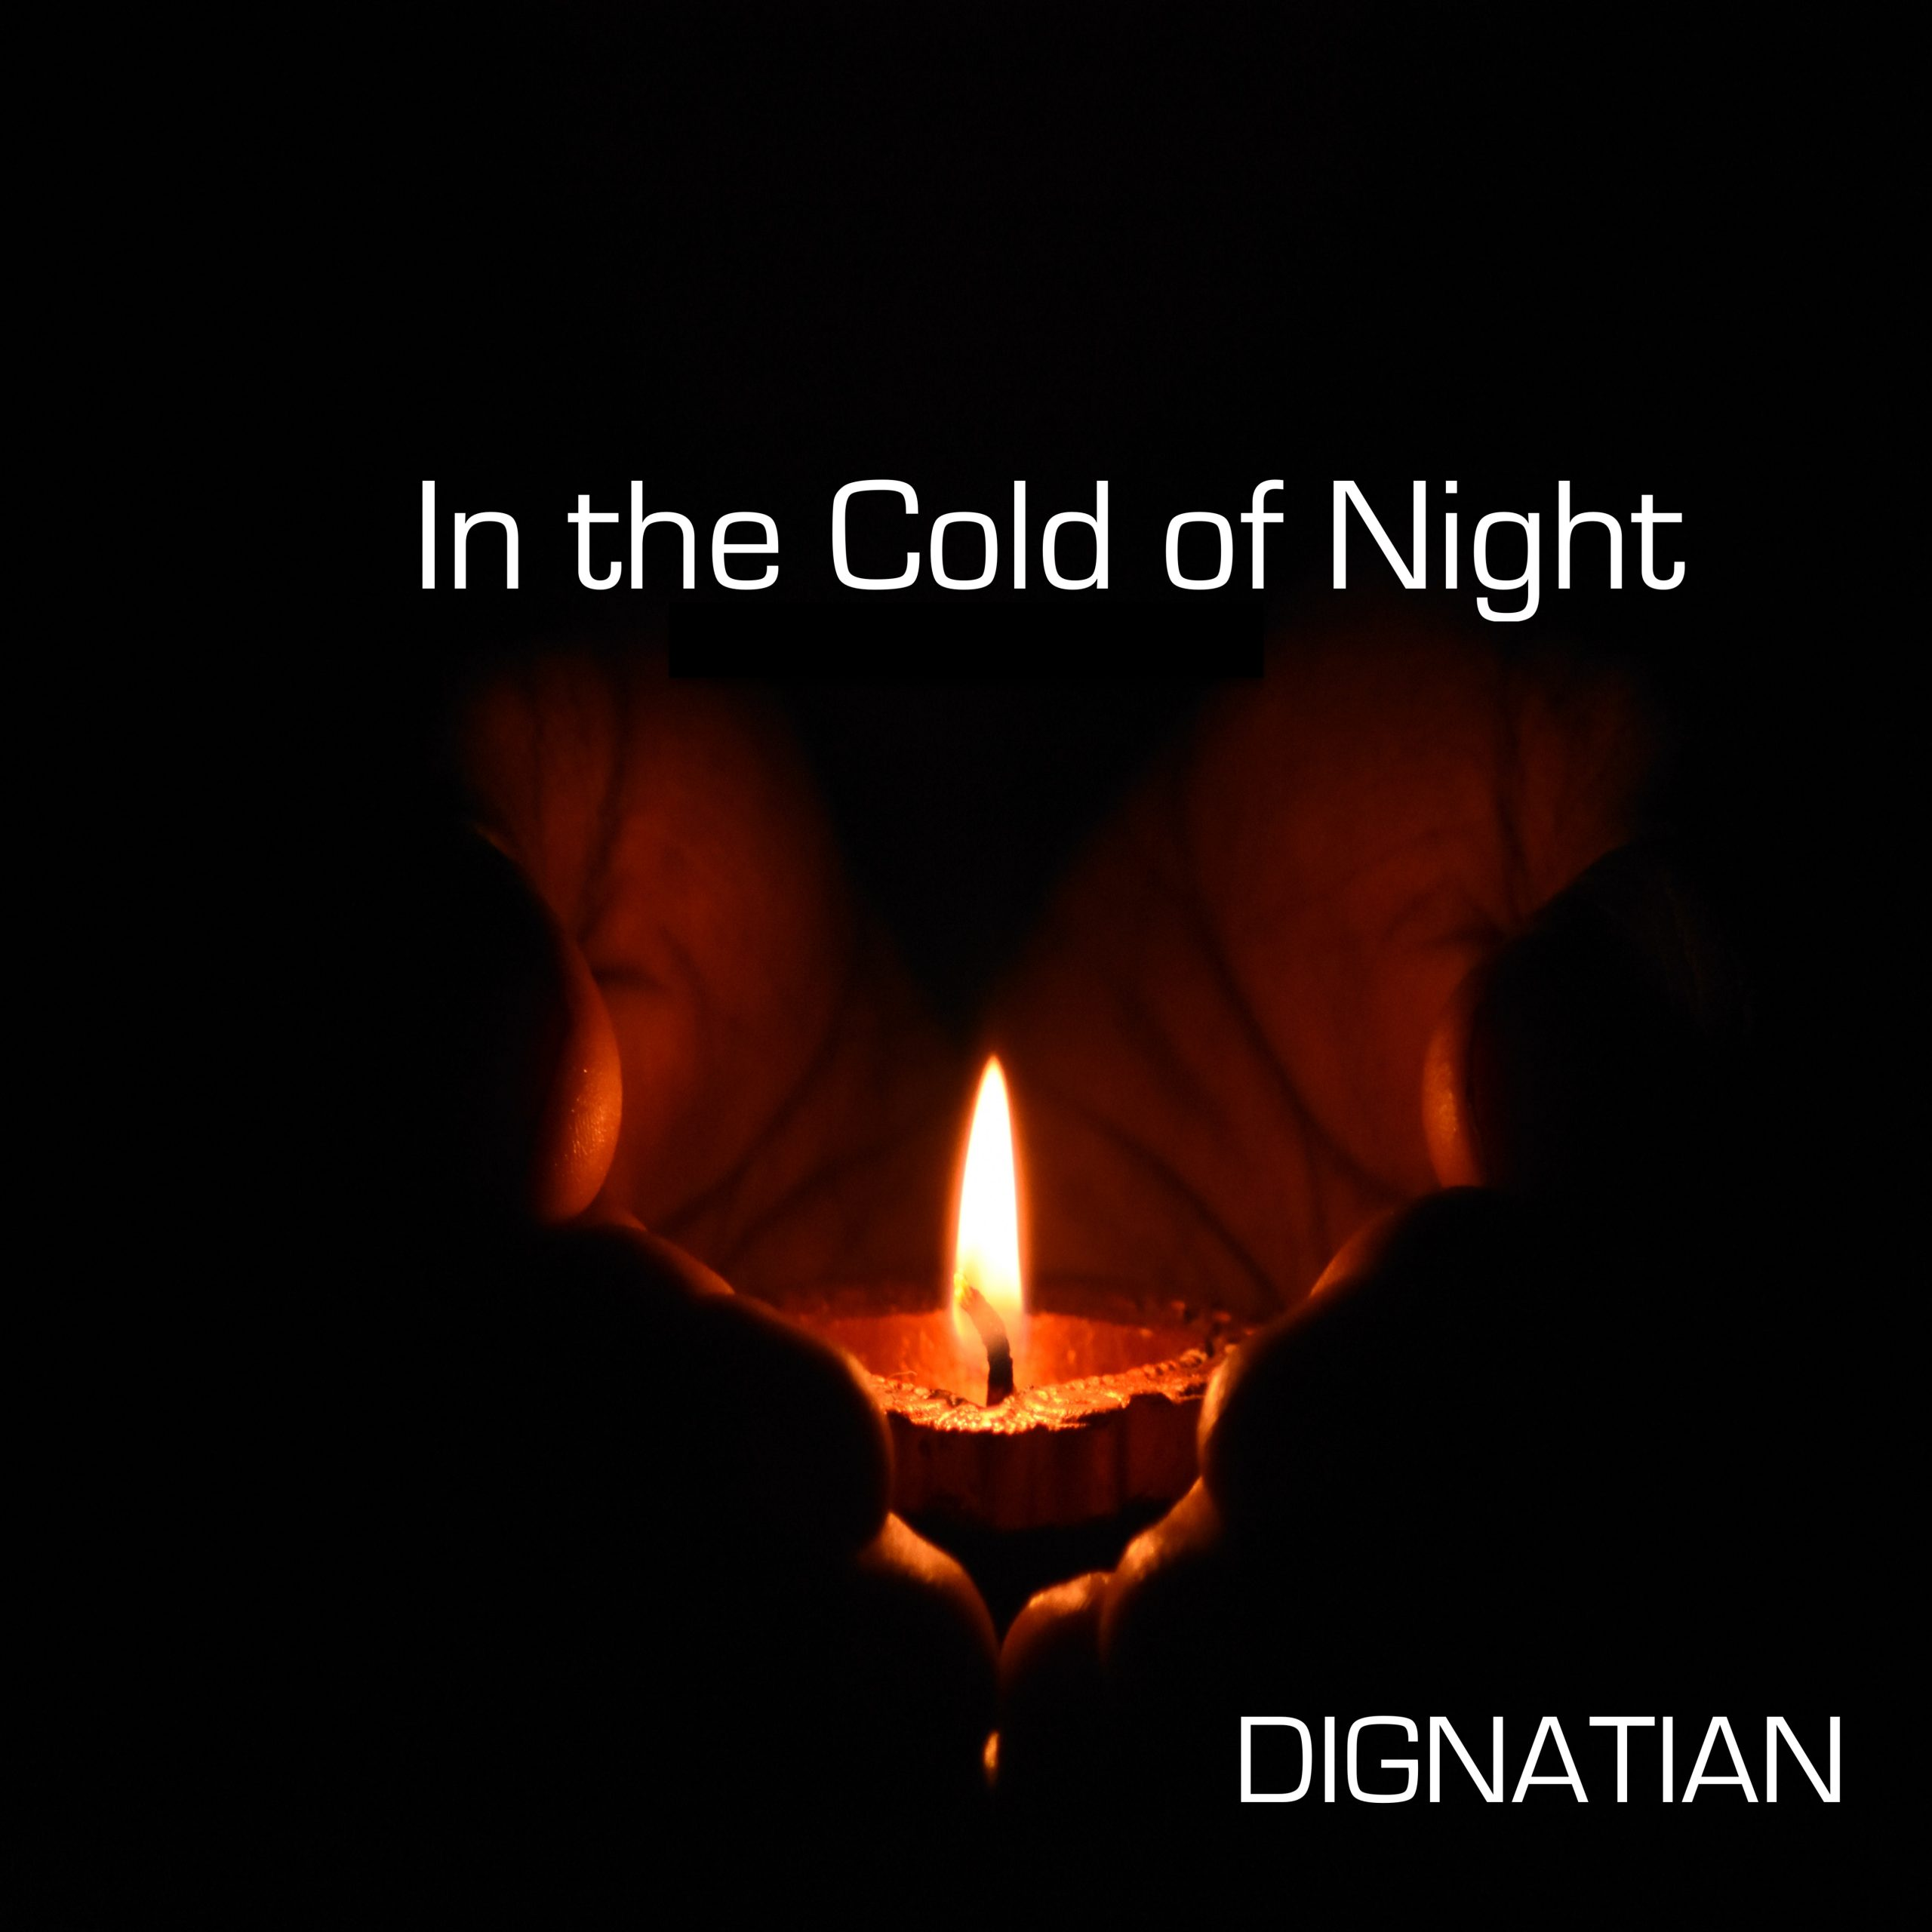 In the Cold of Night